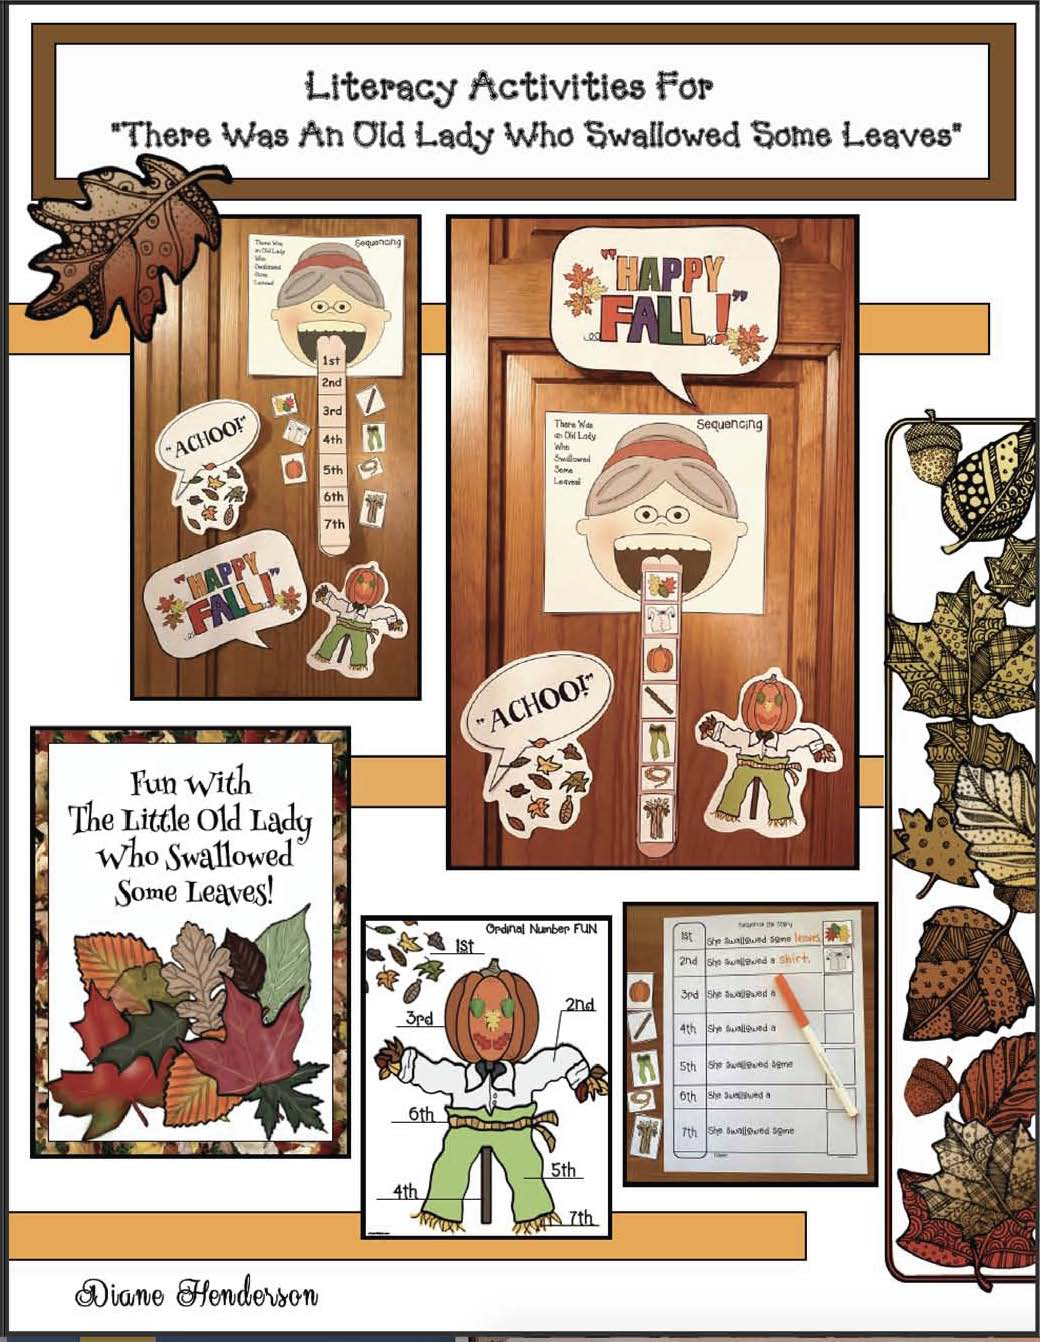 activities for the little old lady who swallowed some leaves, the little old lady who swallowed some leaves, activities for there was an old lady, fall bulletin board ideas, fall writing prompts, sequencing & retelling a story activties, literacy centers for fall